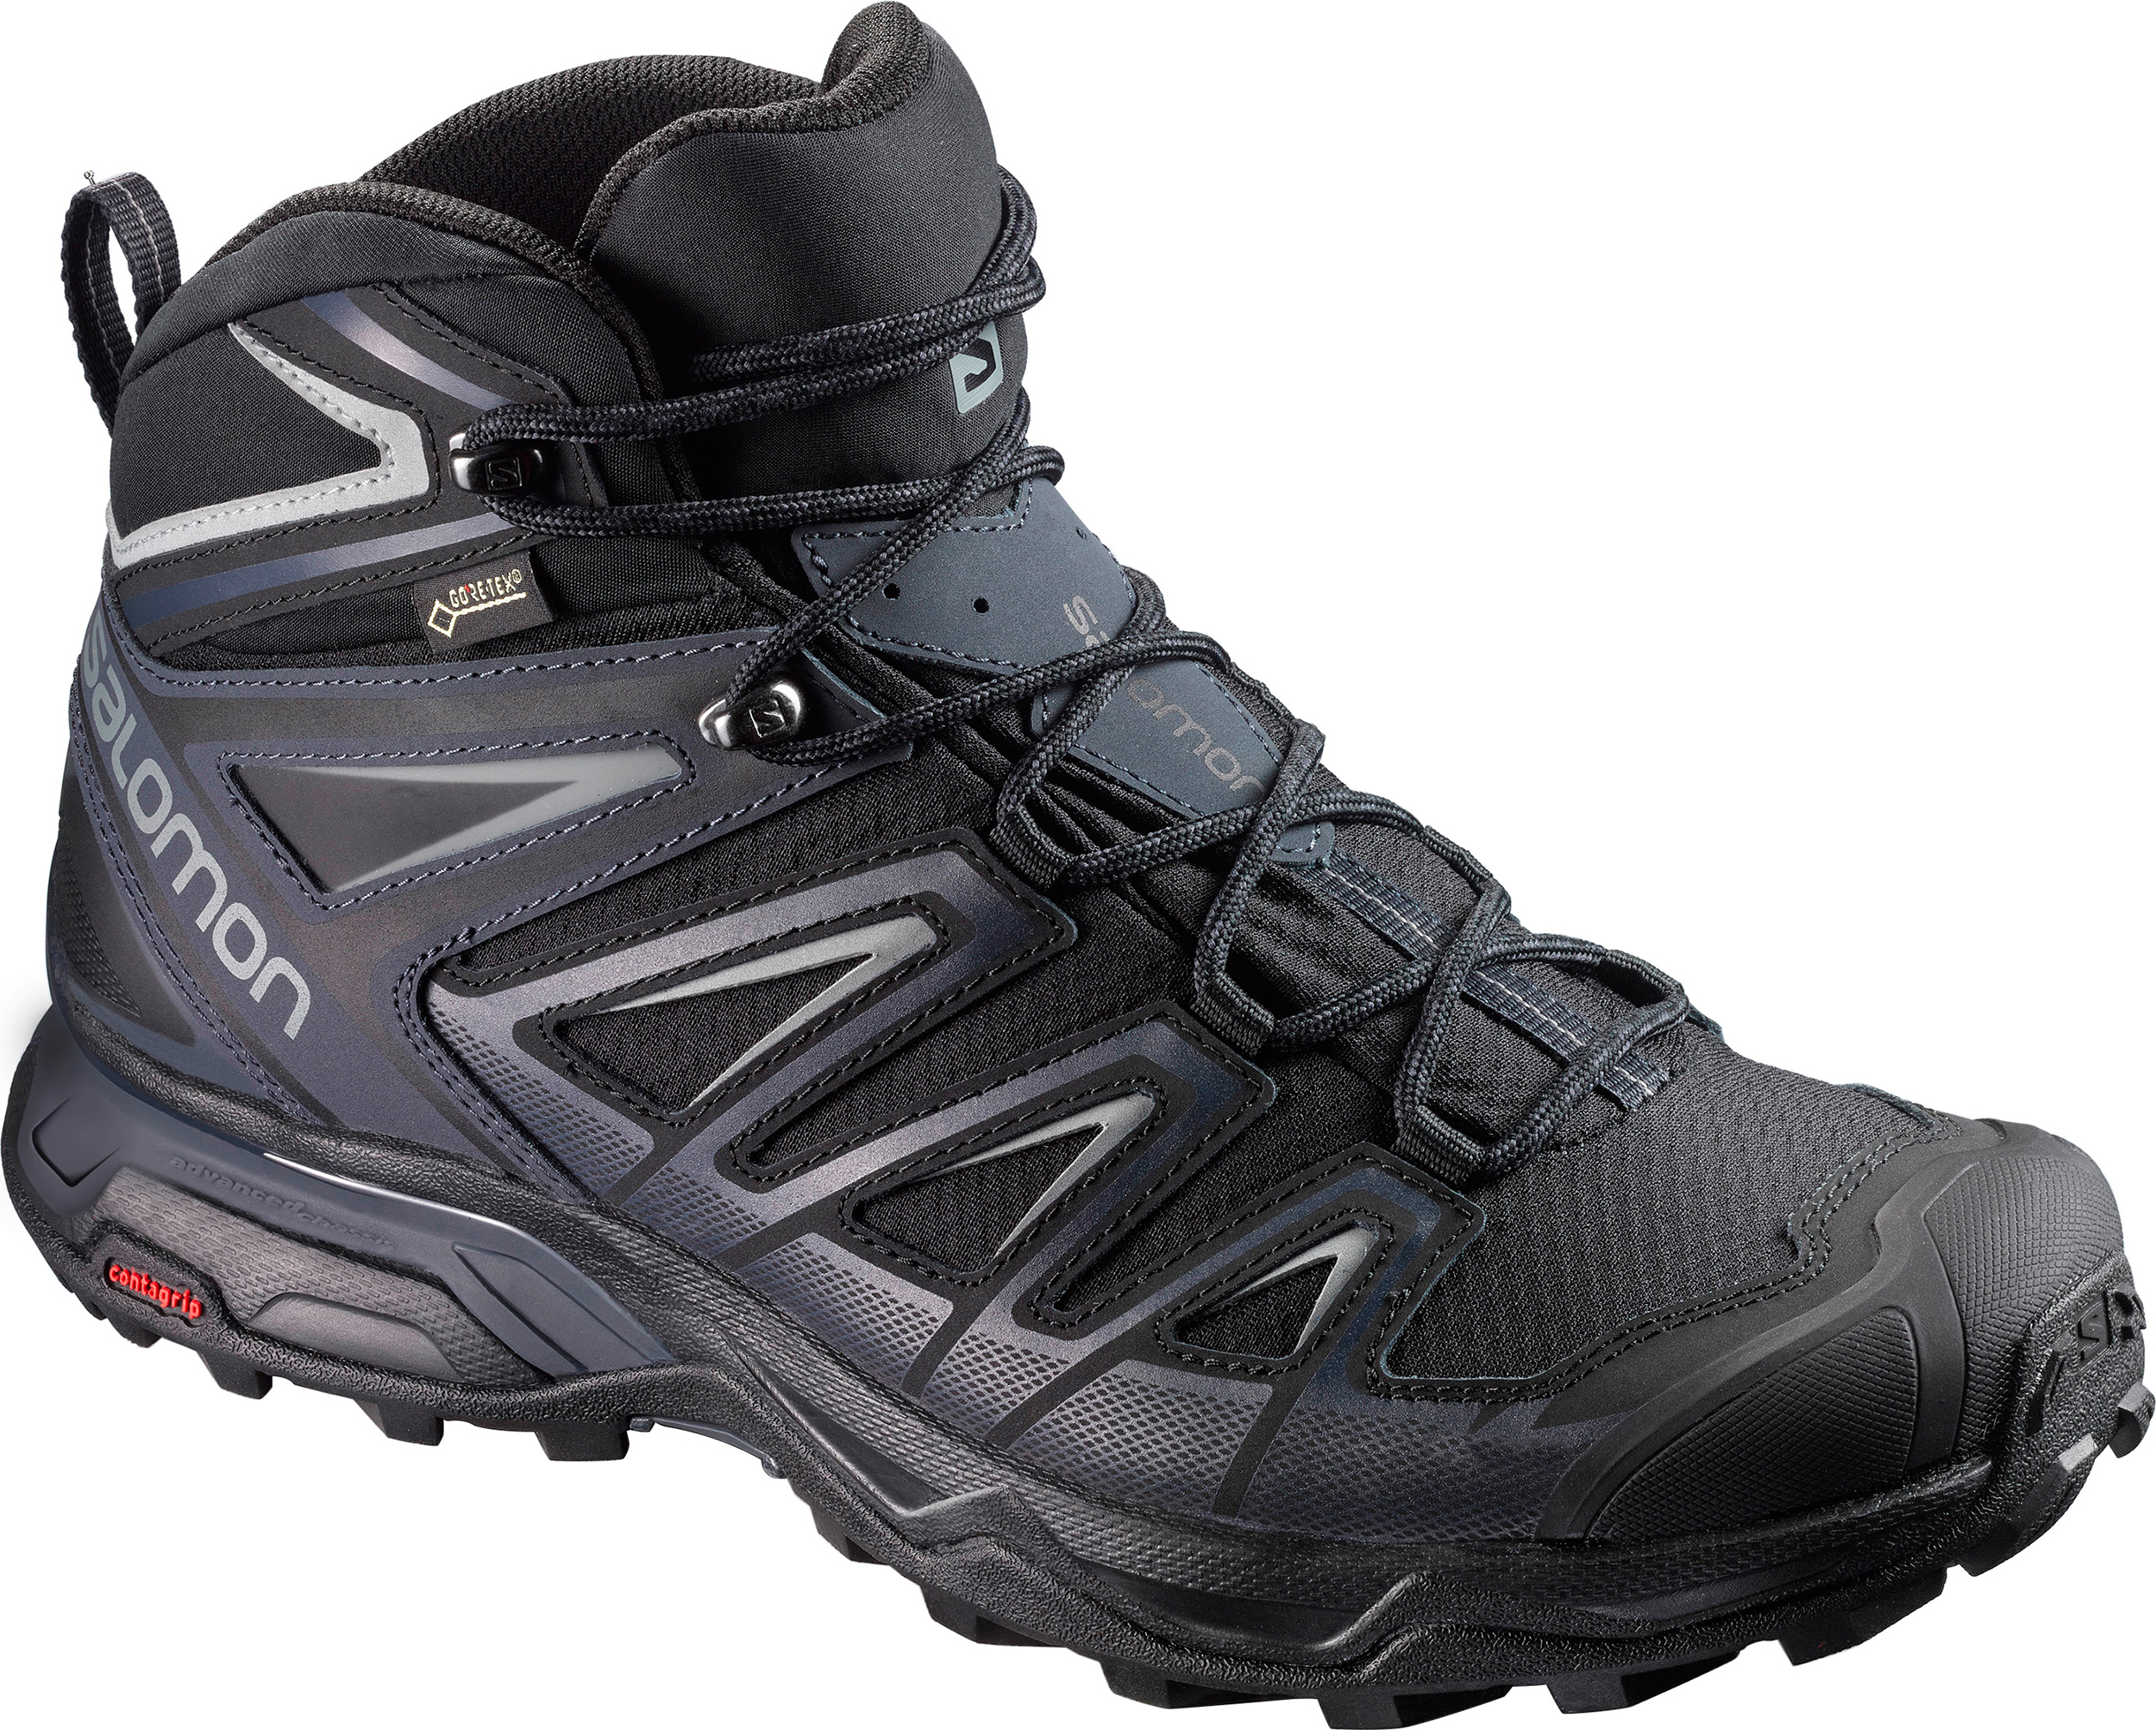 6f4a4d2fe43 Salomon X Ultra Mid 3 GTX Light Trail Shoes - Men's